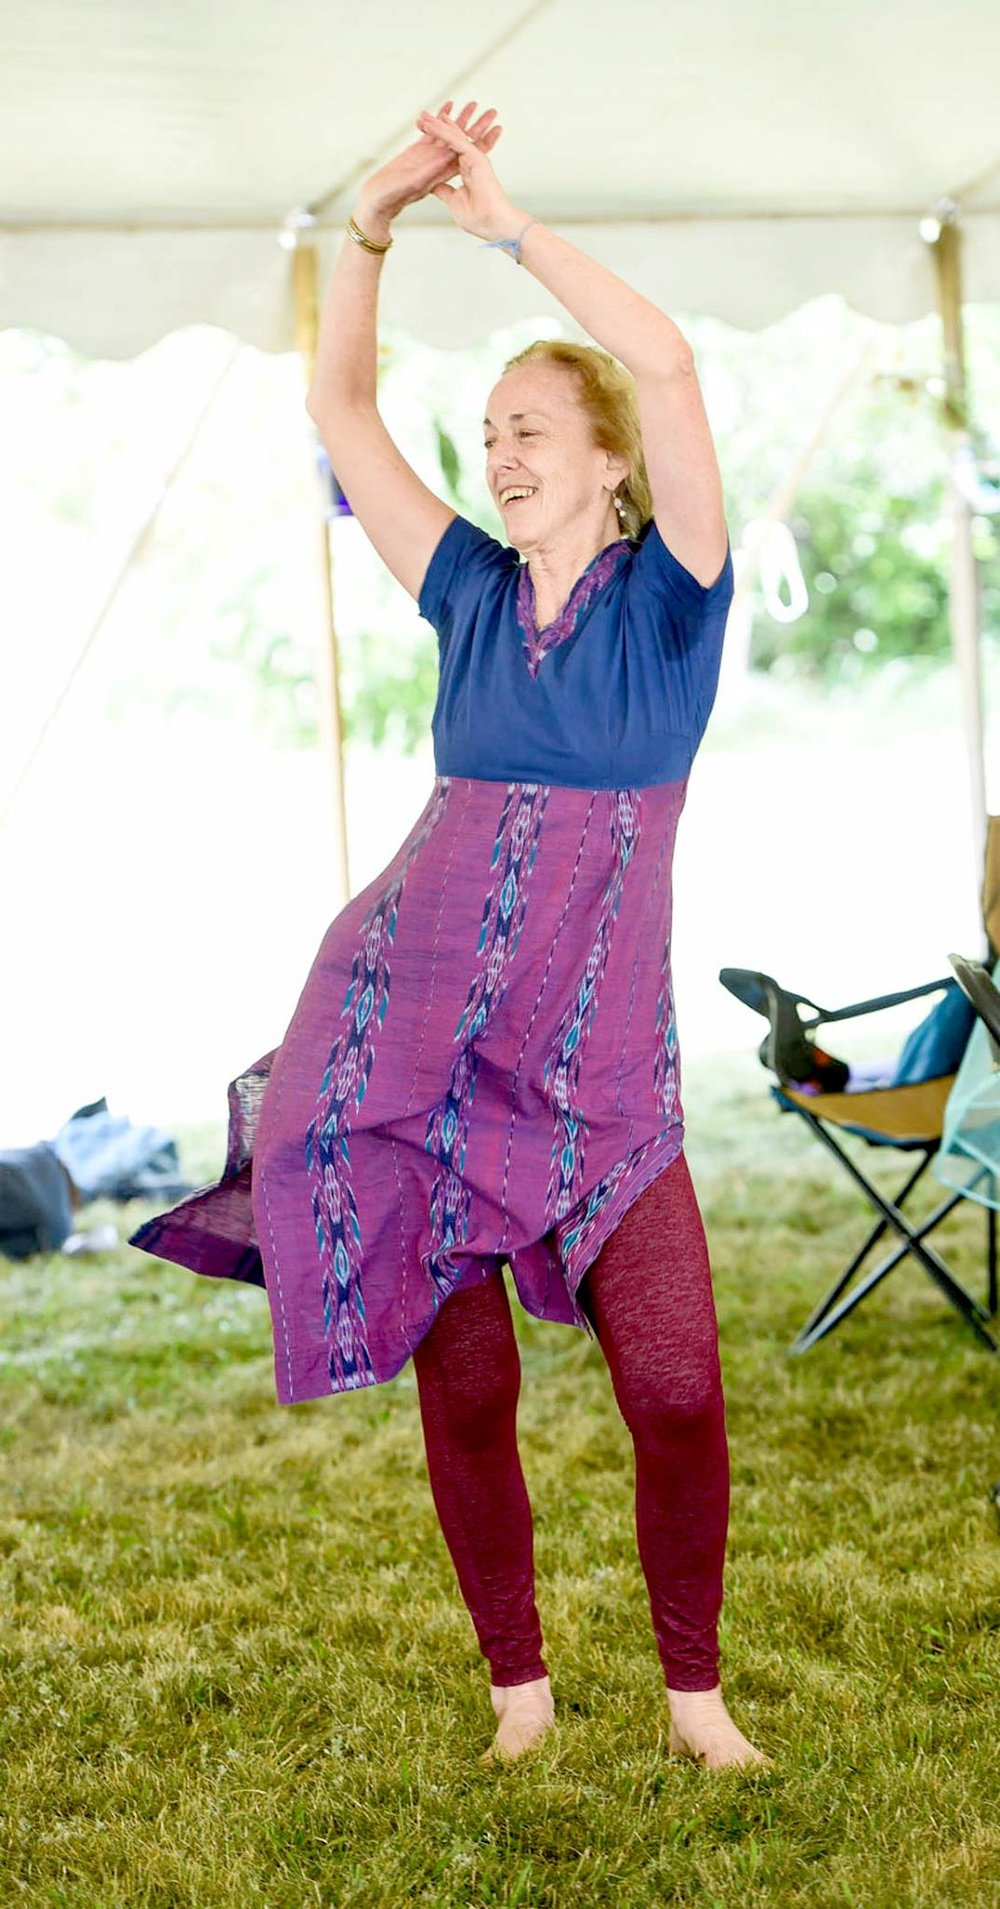 Kirtan Dance Workshop: Madhavi Mai - Description: Kirtan Dance combines the healing vibrational practice of devotional singing (nada yoga), with the whole body experience of dancing. Sessions begin with chanting a kirtan/song together, then move into dancing. Simple Indian folk and Bollywood dance moves will combine with classical dance mudras/hand gestures, and hatha yoga. Participants dance together to the same kirtan that they sing. Mind, body, and spirit are engaged in balance, allowing great joy, ecstasy, and peace to be experienced. Sessions end with a silent meditation. About: Madhavi Marcia Mai's early training in modern dance was at Oakland University in Rochester, Michigan, and at the Alvin Ailey Dance Studio in New York City. In India she began her training in Bharatanatyam at Tiveni Kala Sangam in New Delhi, but then transferred to Kalakshetra College of Fine Arts in Chenna, to study dance, dramatic theory, and carnatic vocal music. When she returned to the United States, Madhavi completed an M.A. in South and Southeast Asian Studies at the University of Michigan. Her research focused on the history of Bharatanatyam, particularly its revival in the early twentieth century, and its subsequent discovery by the West. As the Artistic Director of Sadhana Dance Theater, Madhavi performs and choreographs with the ensemble and teaches all levels of students through Sadhana Studio. From 2000-2012 she was a Lecturer in the Department of Theater, Dance, and Music at Oakland University, and returned in 2016 to teach Dance In American Culture. She has been an IAM meditation teacher at the Amma Center of Michigan for many years as well.